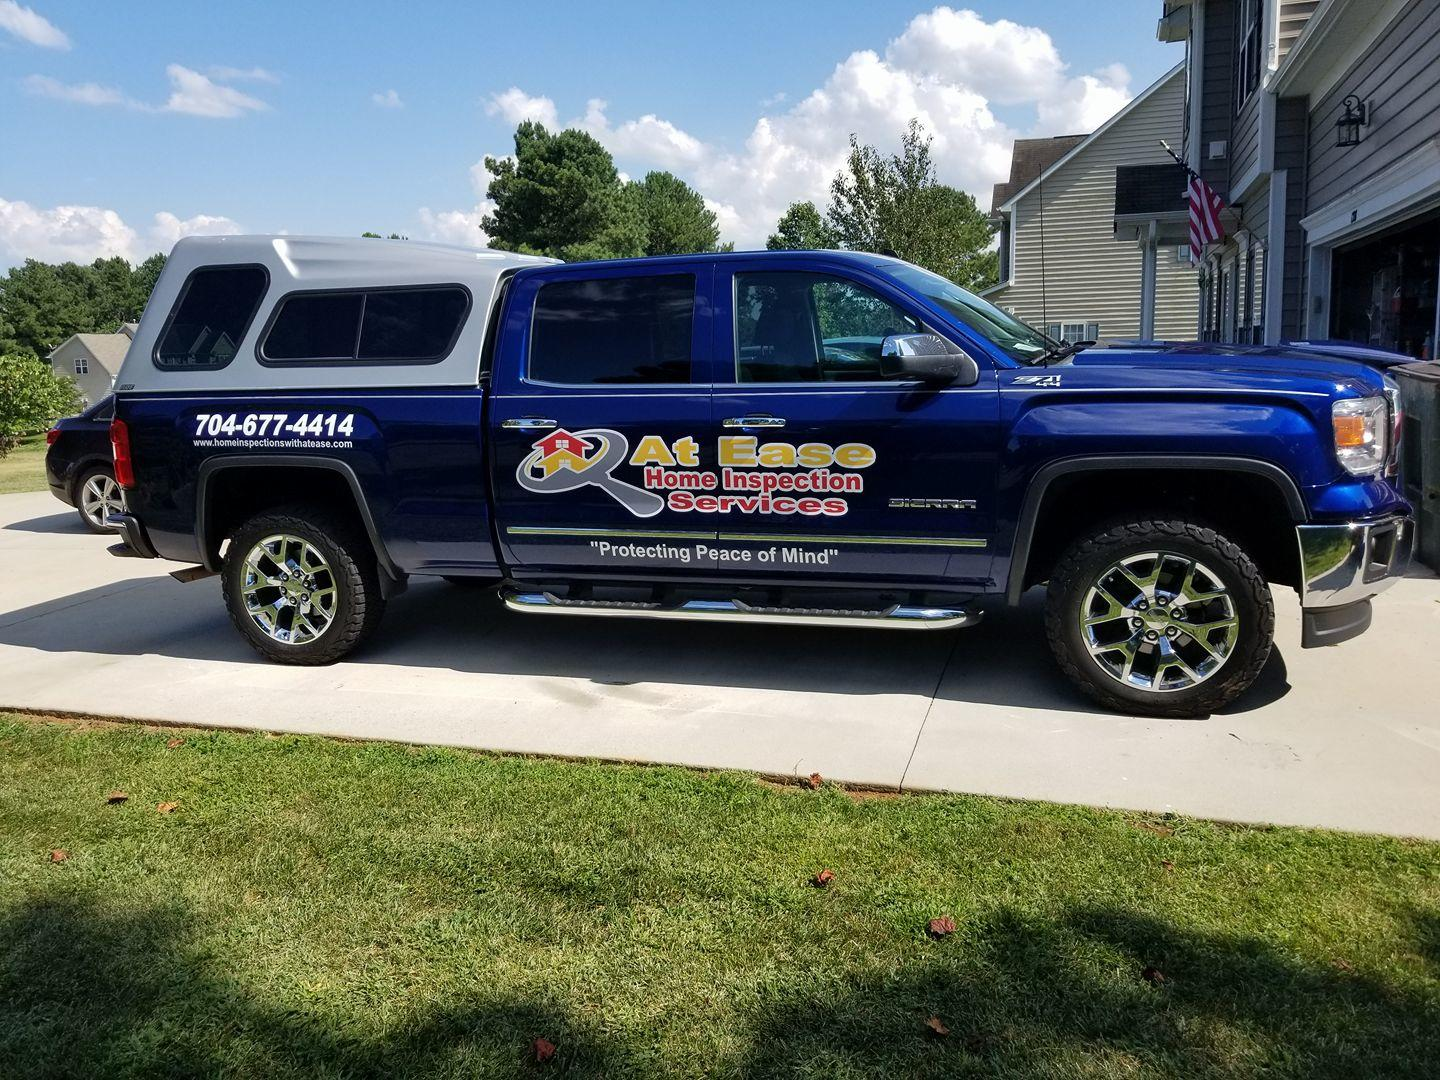 At Ease Home Inspection Services, LLC image 1